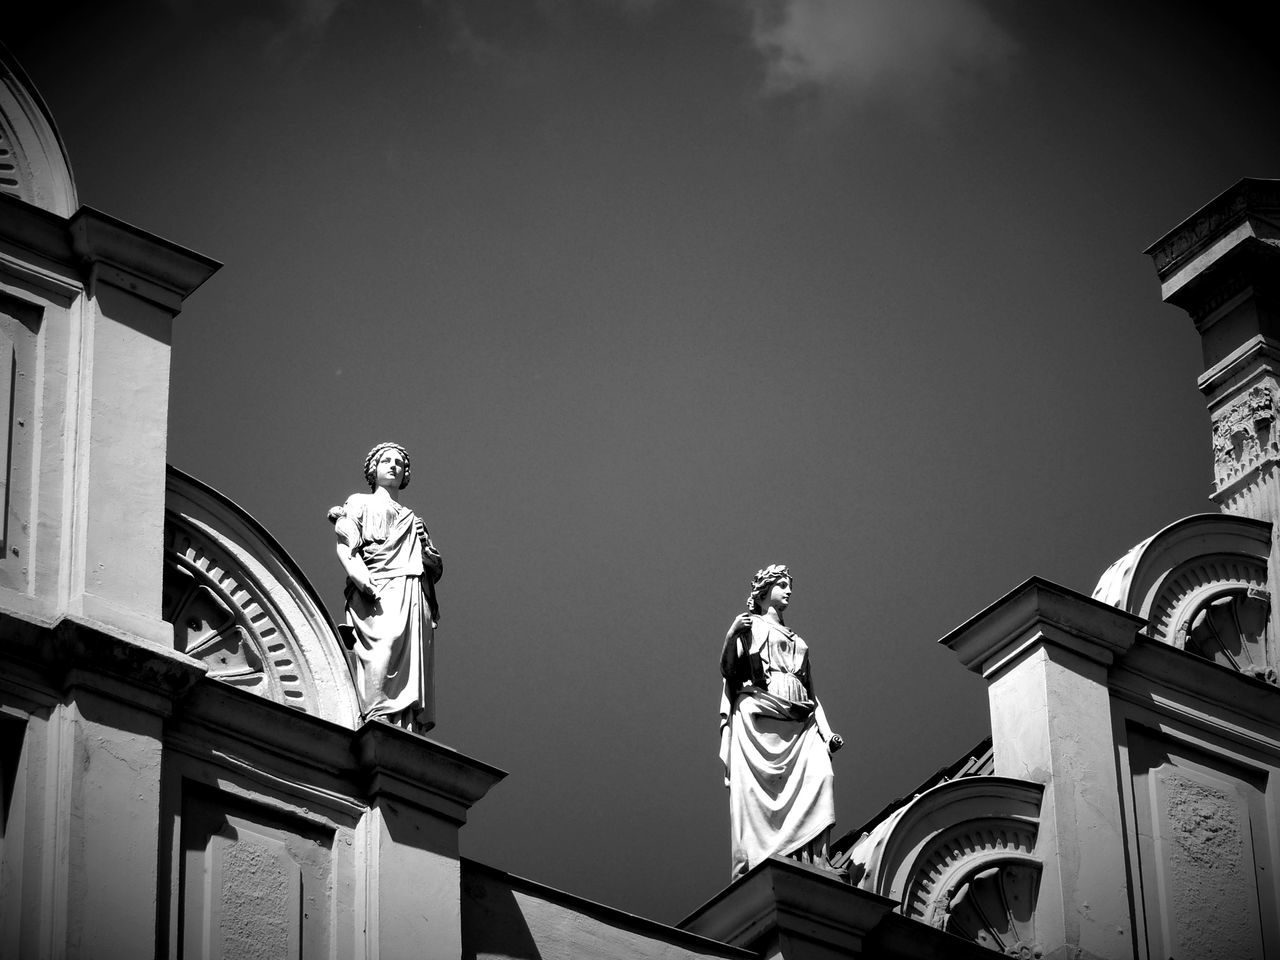 Low Angle View Of Statues On Historic Building Against Sky